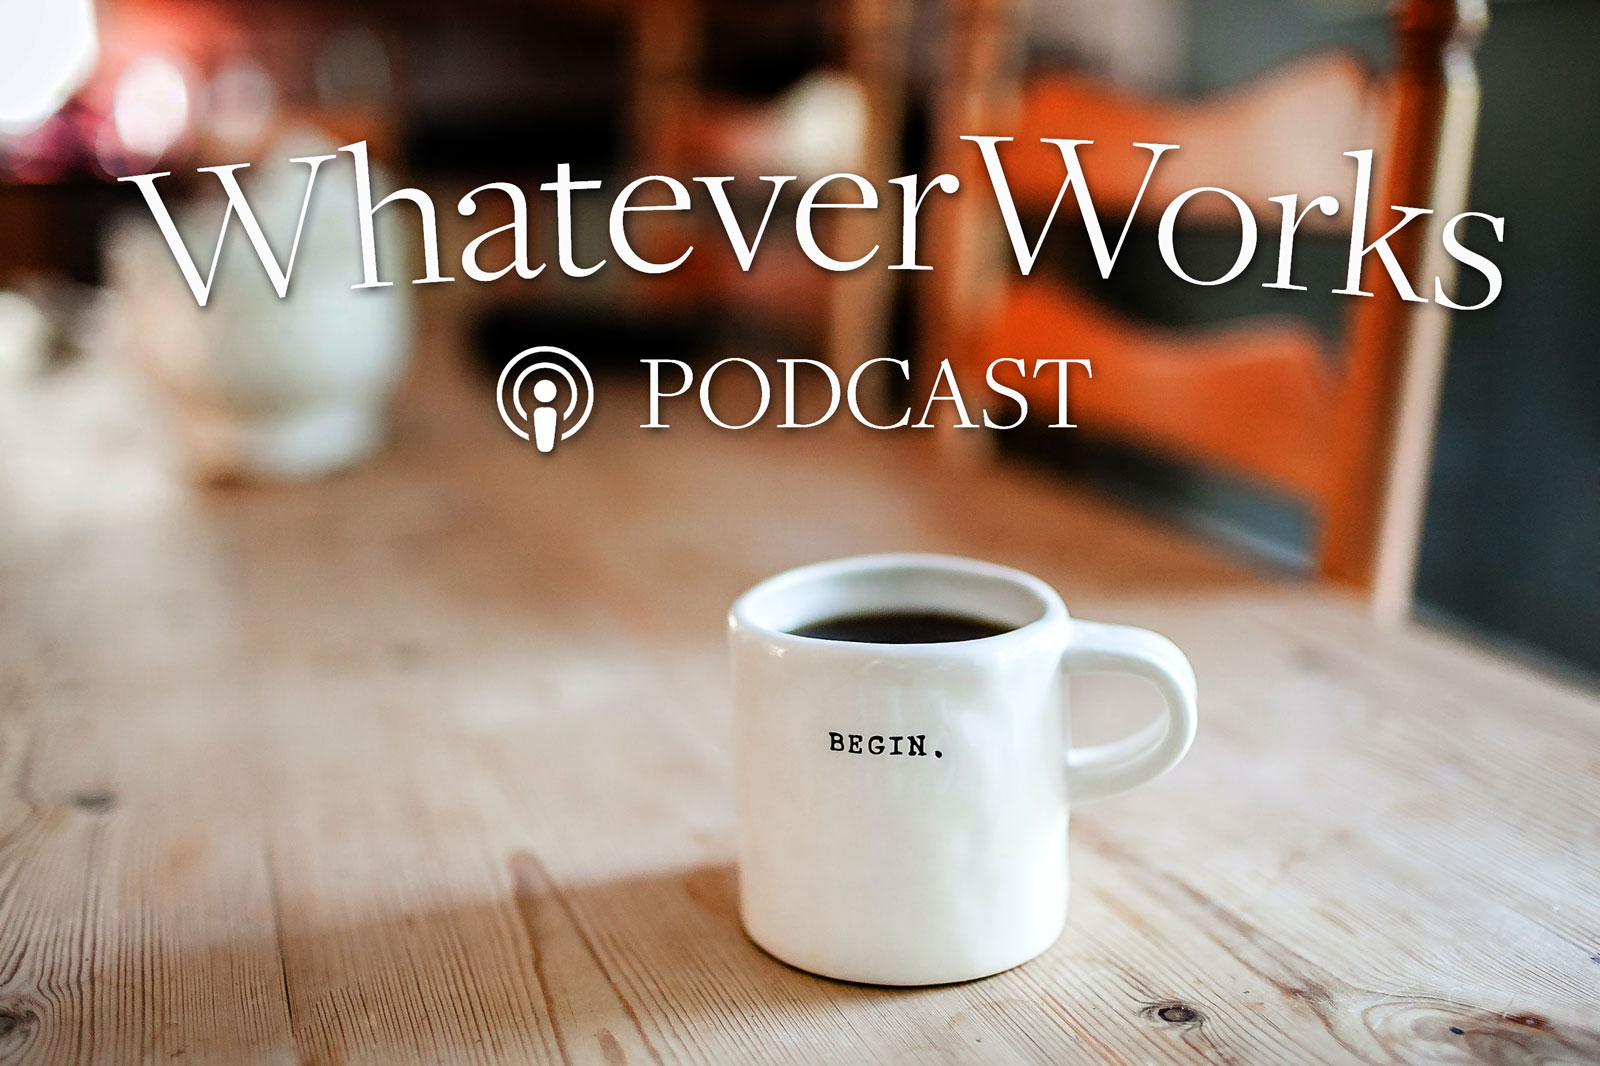 The WhateverWorks Podcast